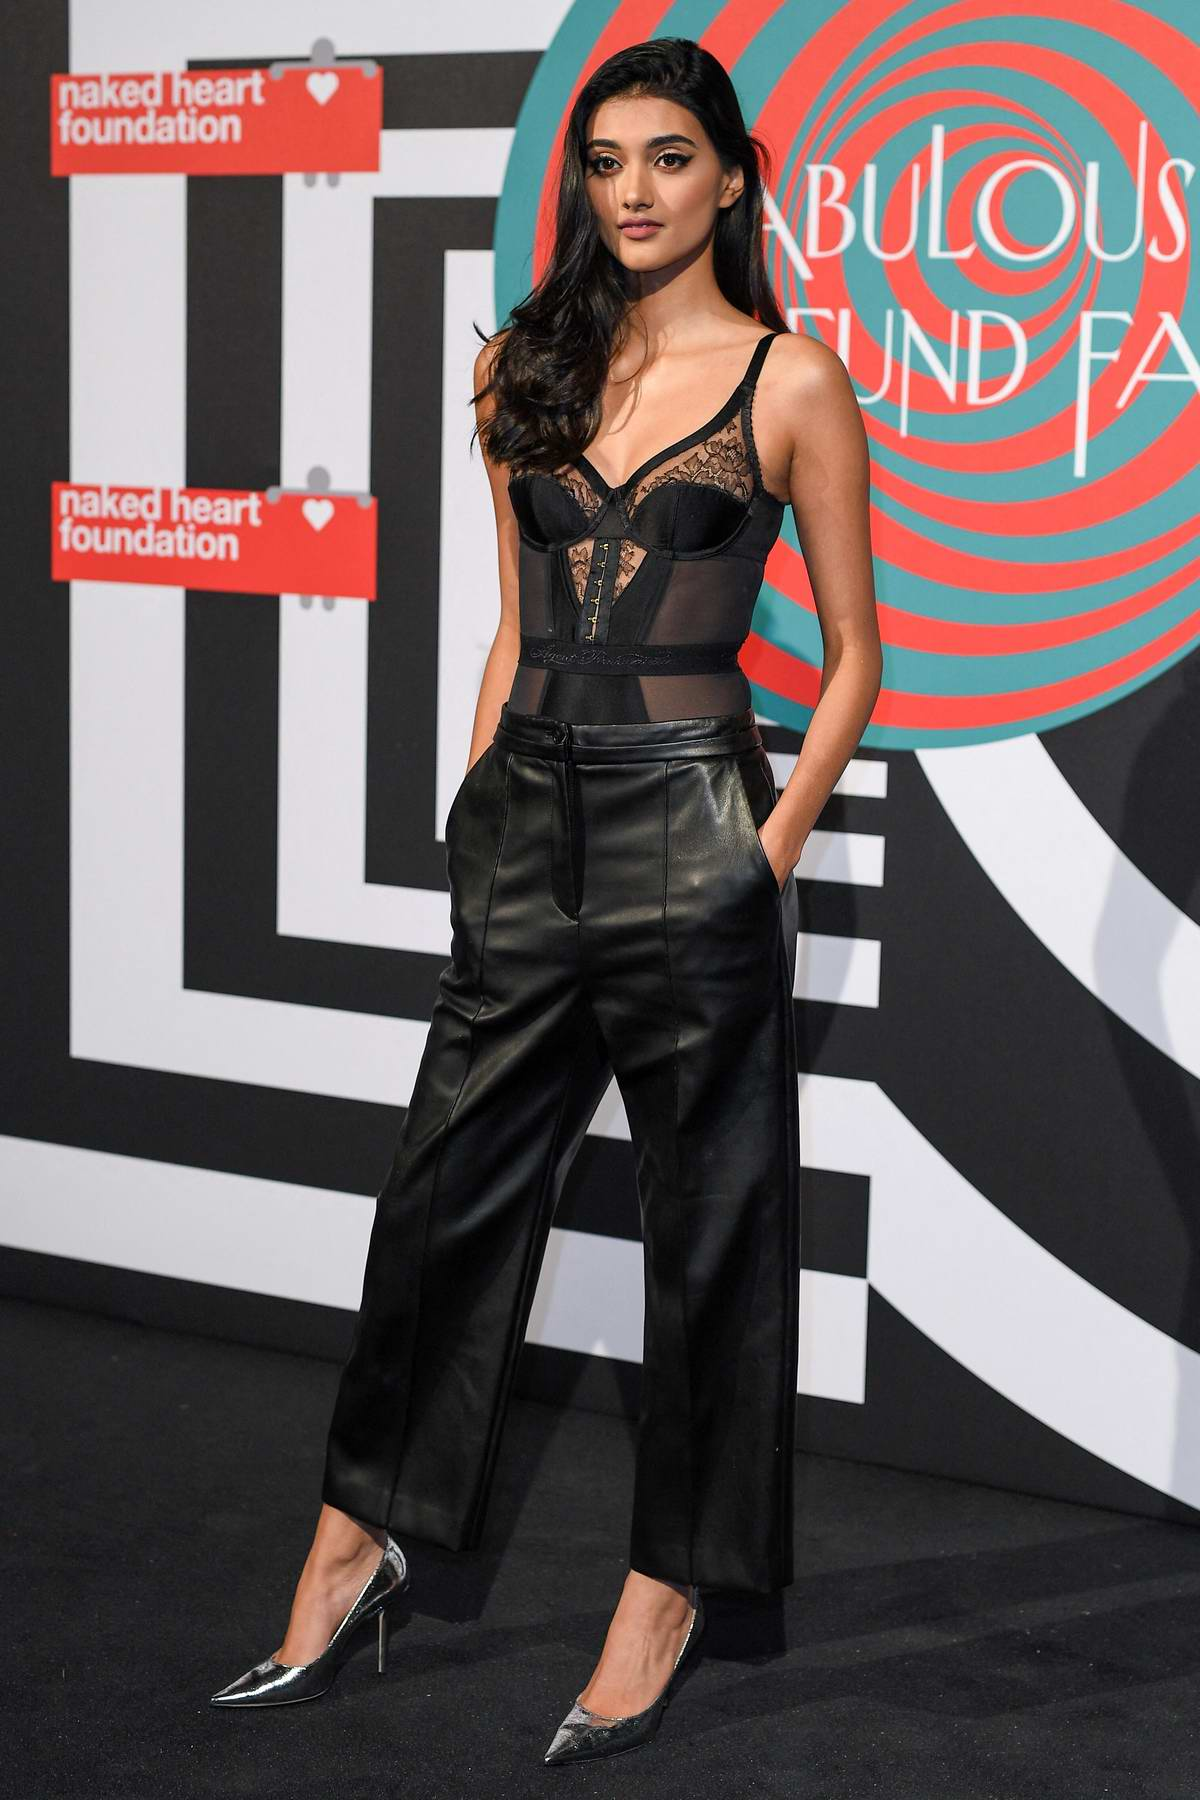 Neelam Gill attends the Naked Heart Foundation's Fabulous Fund Fair at the Brewer Street Car Park in London, UK